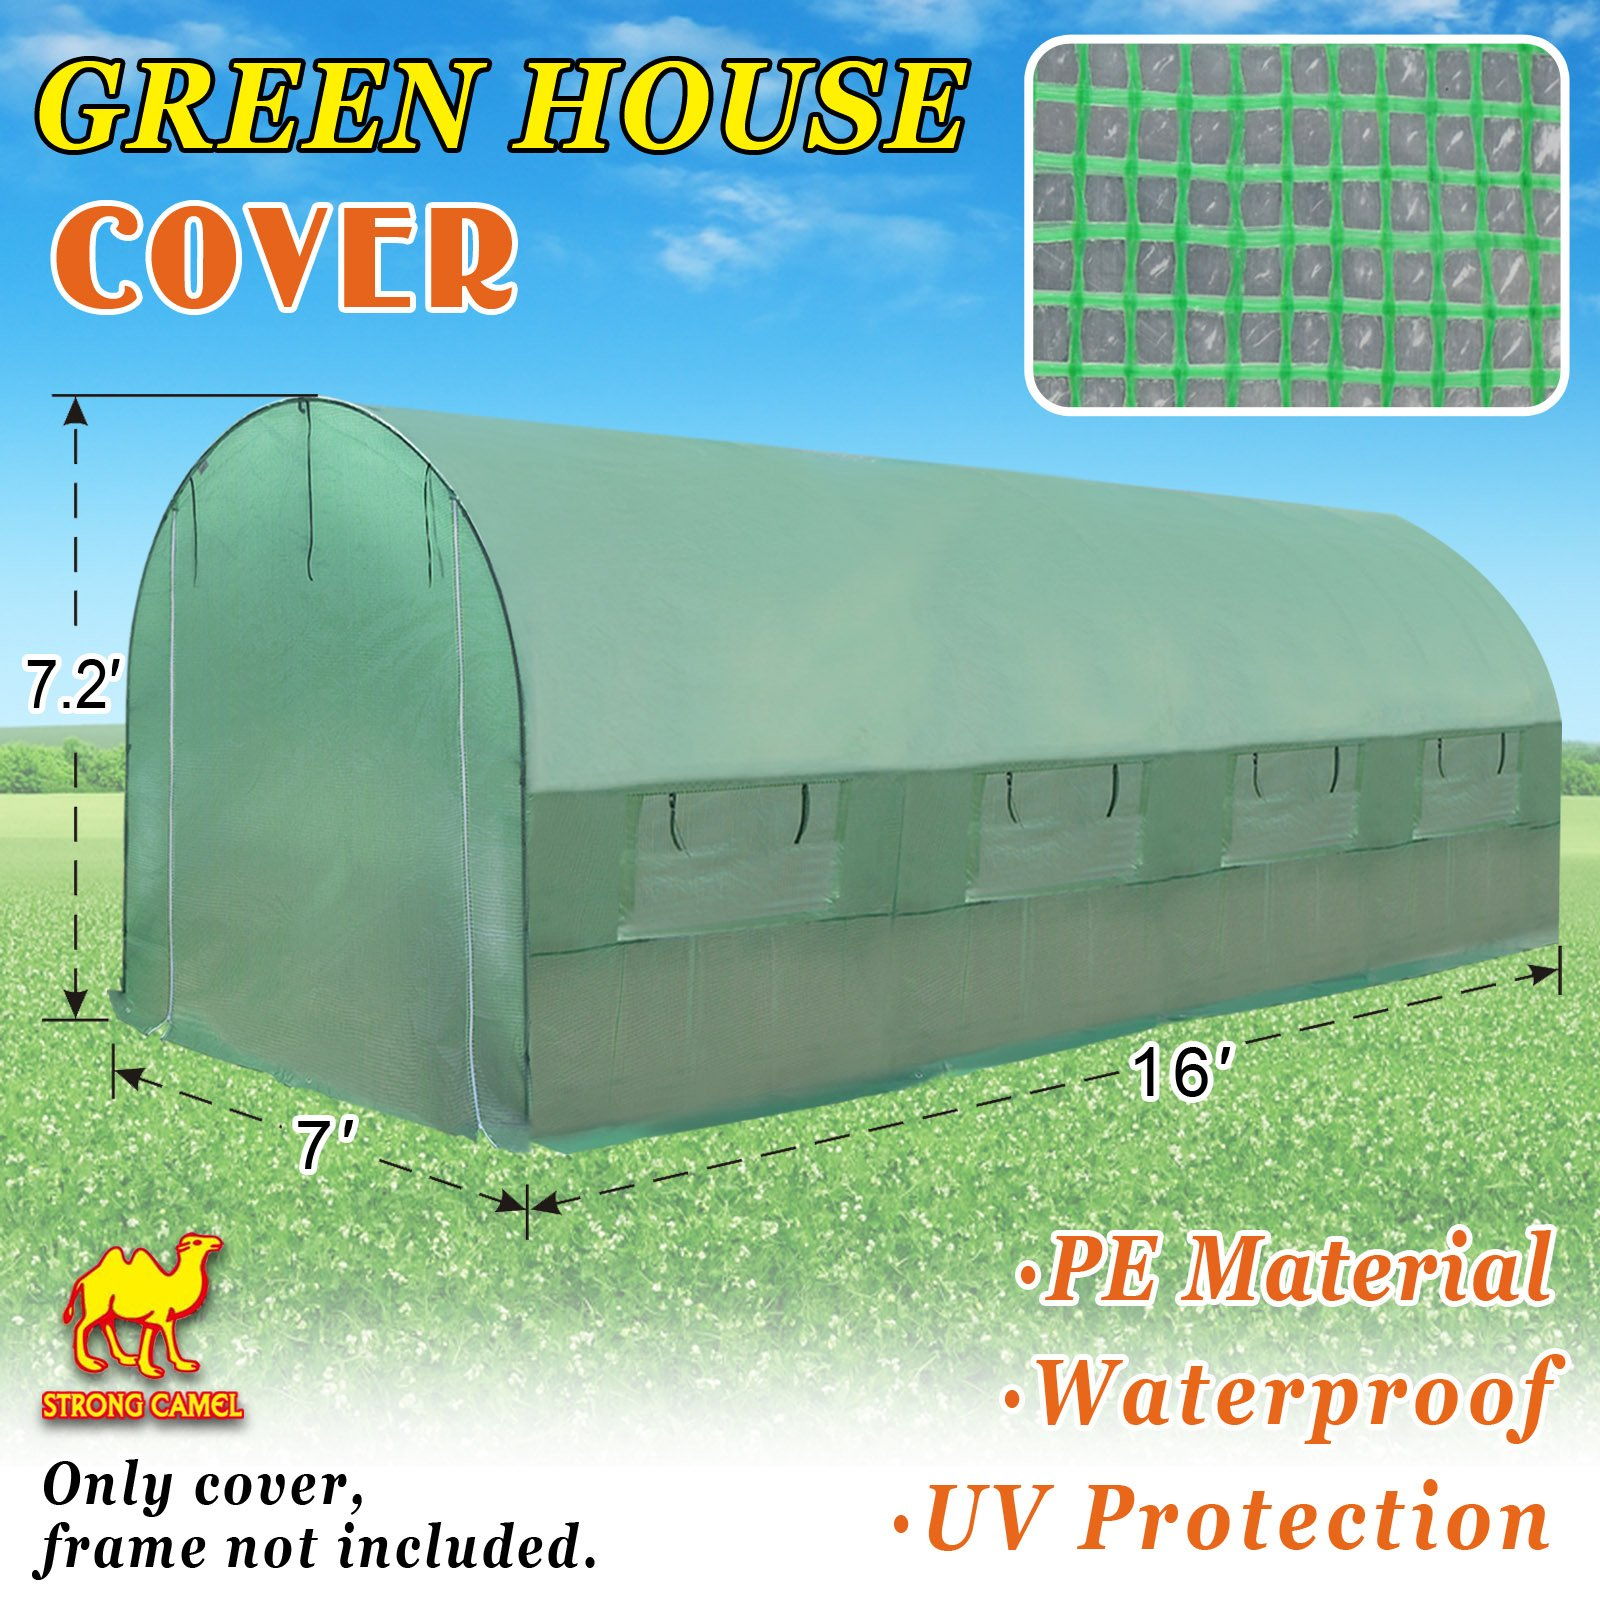 Strong Camel Replacement Hot Green House Cover in Green Color for 16' X 7' X 7' H Larger Walk In Outdoor Plant Gardening Greenhouse (FRAME DOES NOT INCLUDED)